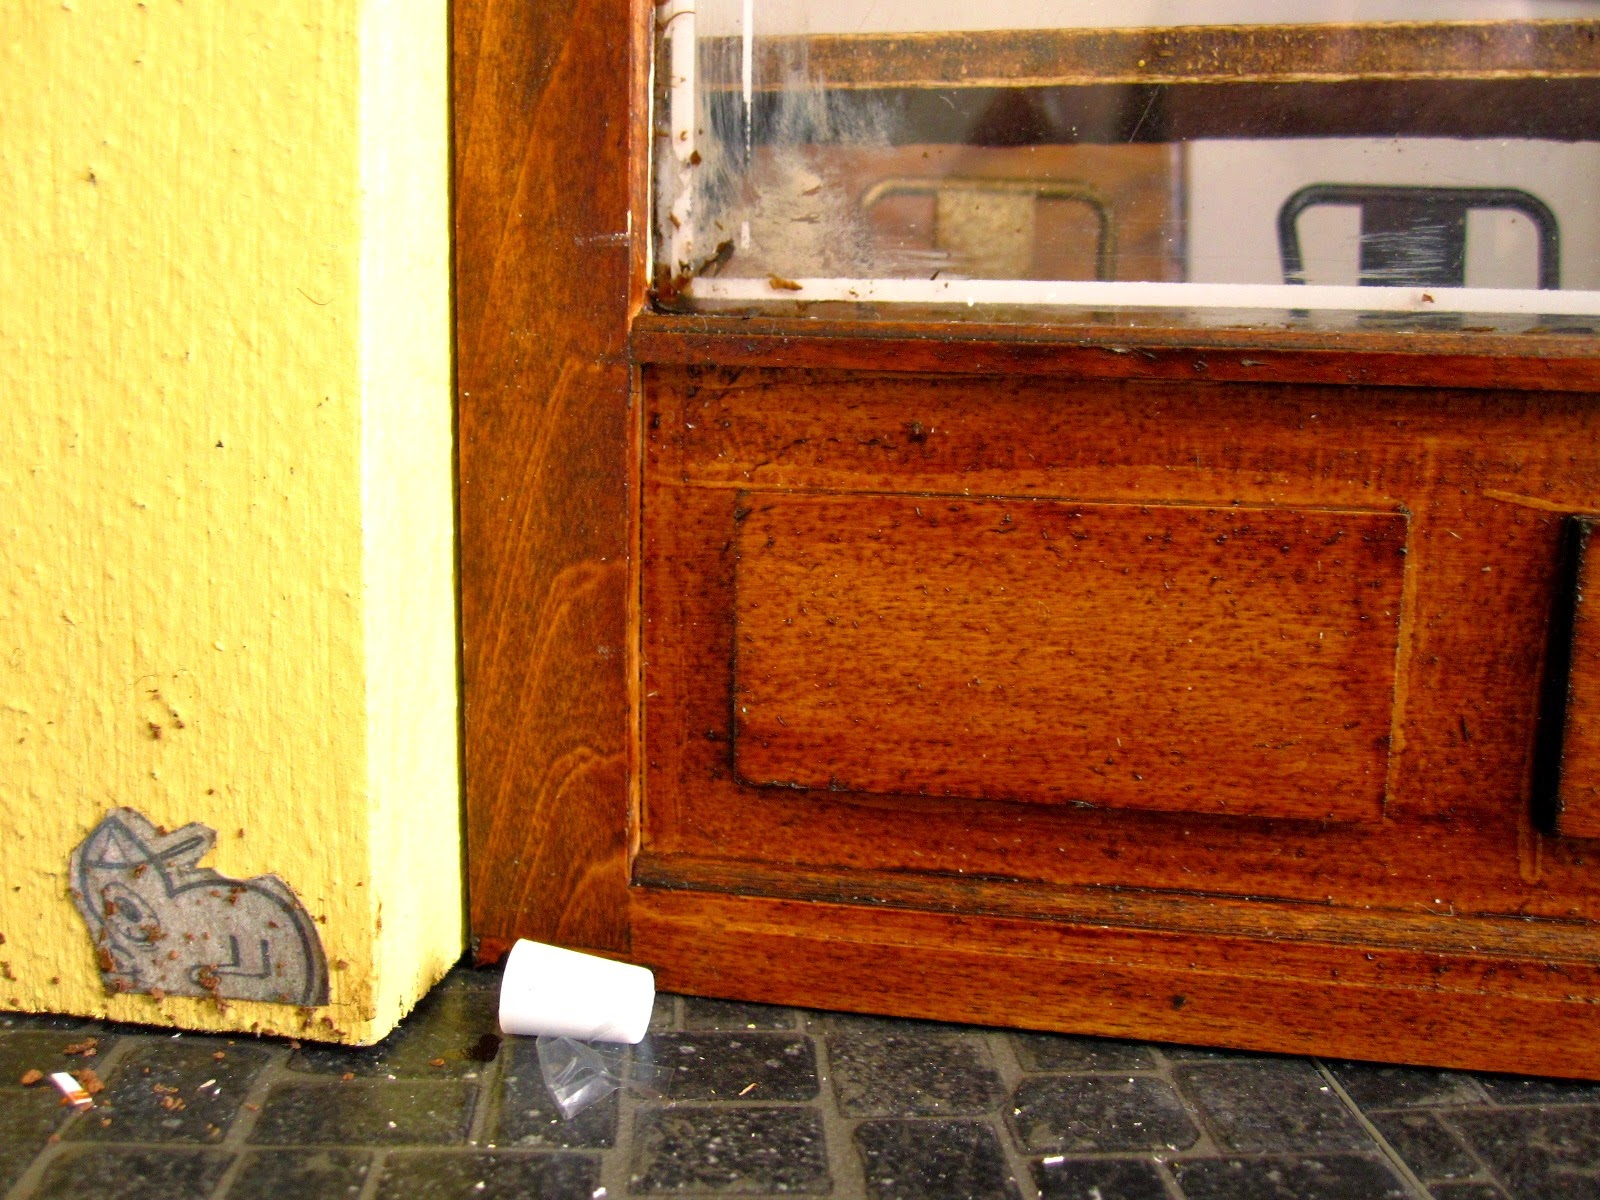 Modern dolls' house miniature cafe exterior detail showing rubbish on the footpath and a paste-up on the wall.